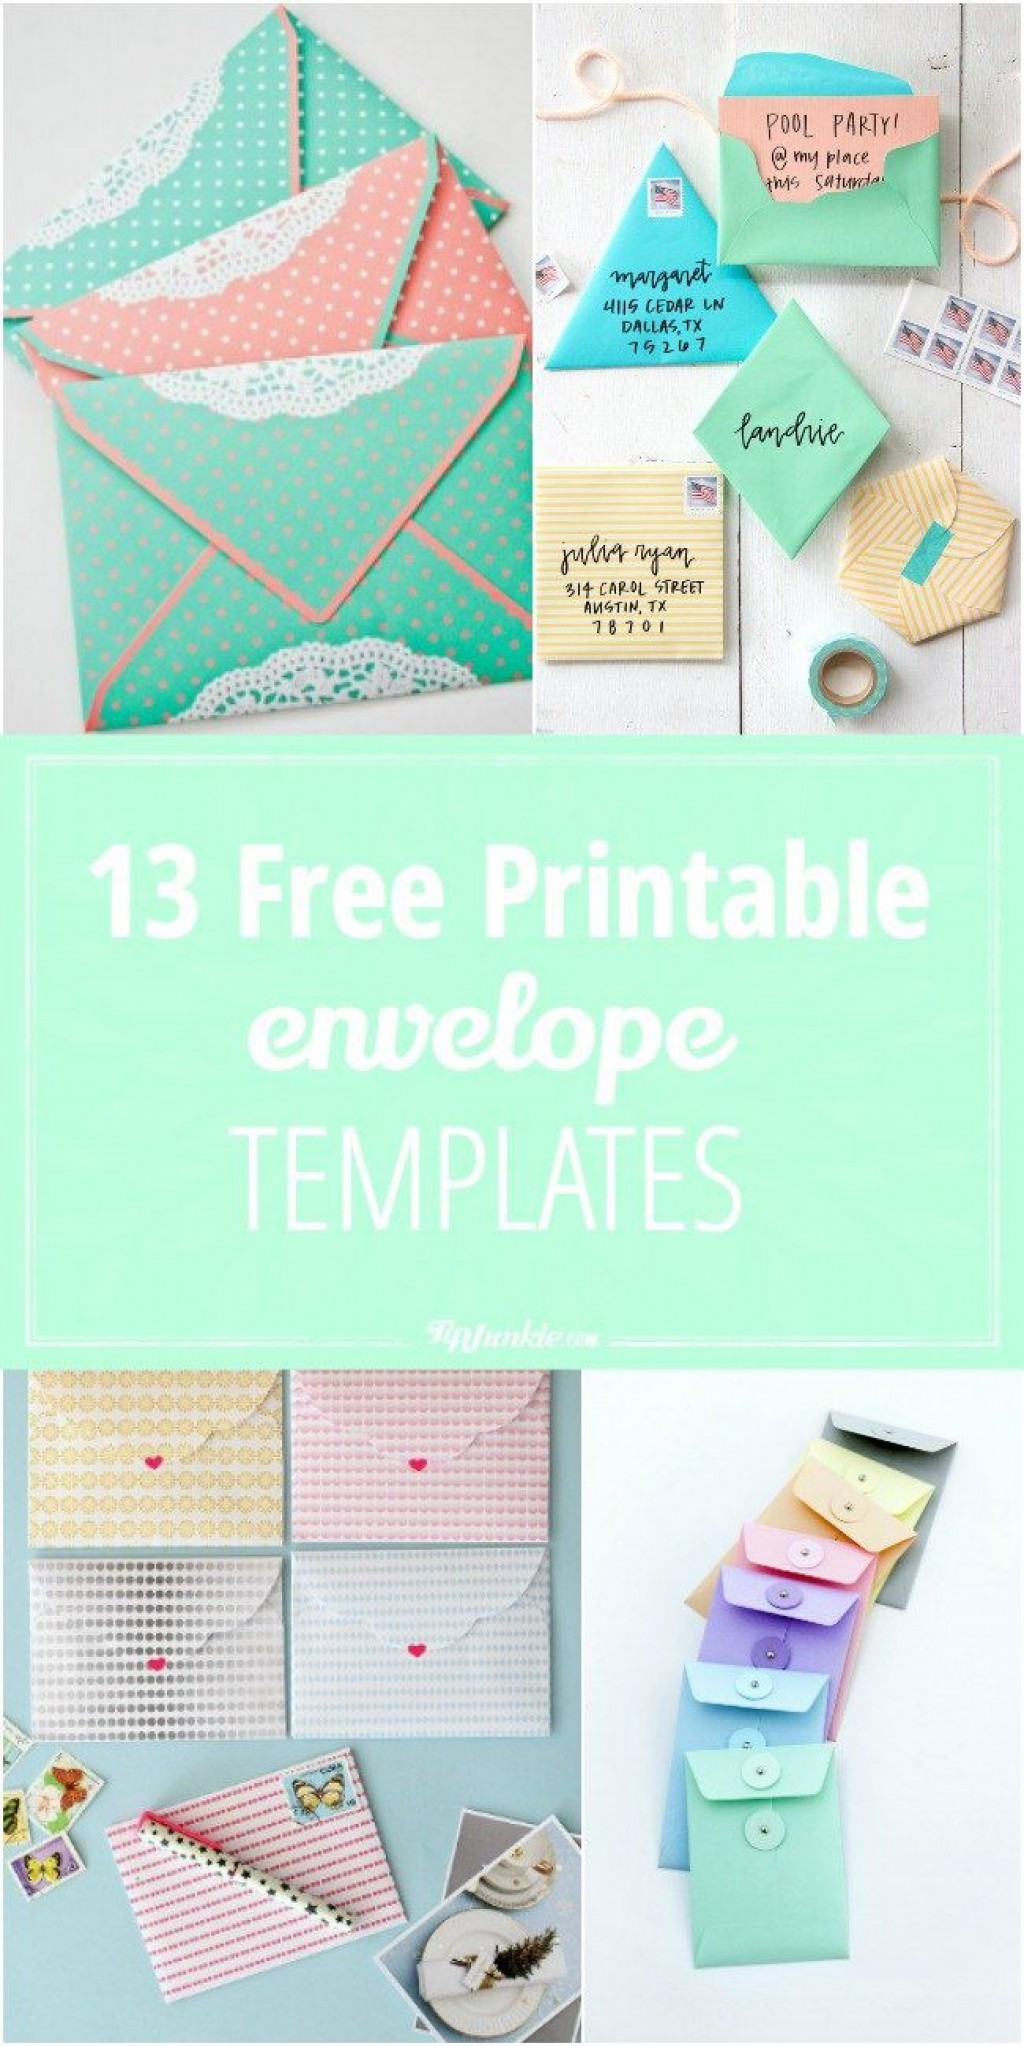 001 Sensational Free Printable Envelope Template Highest Clarity  Templates Addres Mini PatternLarge